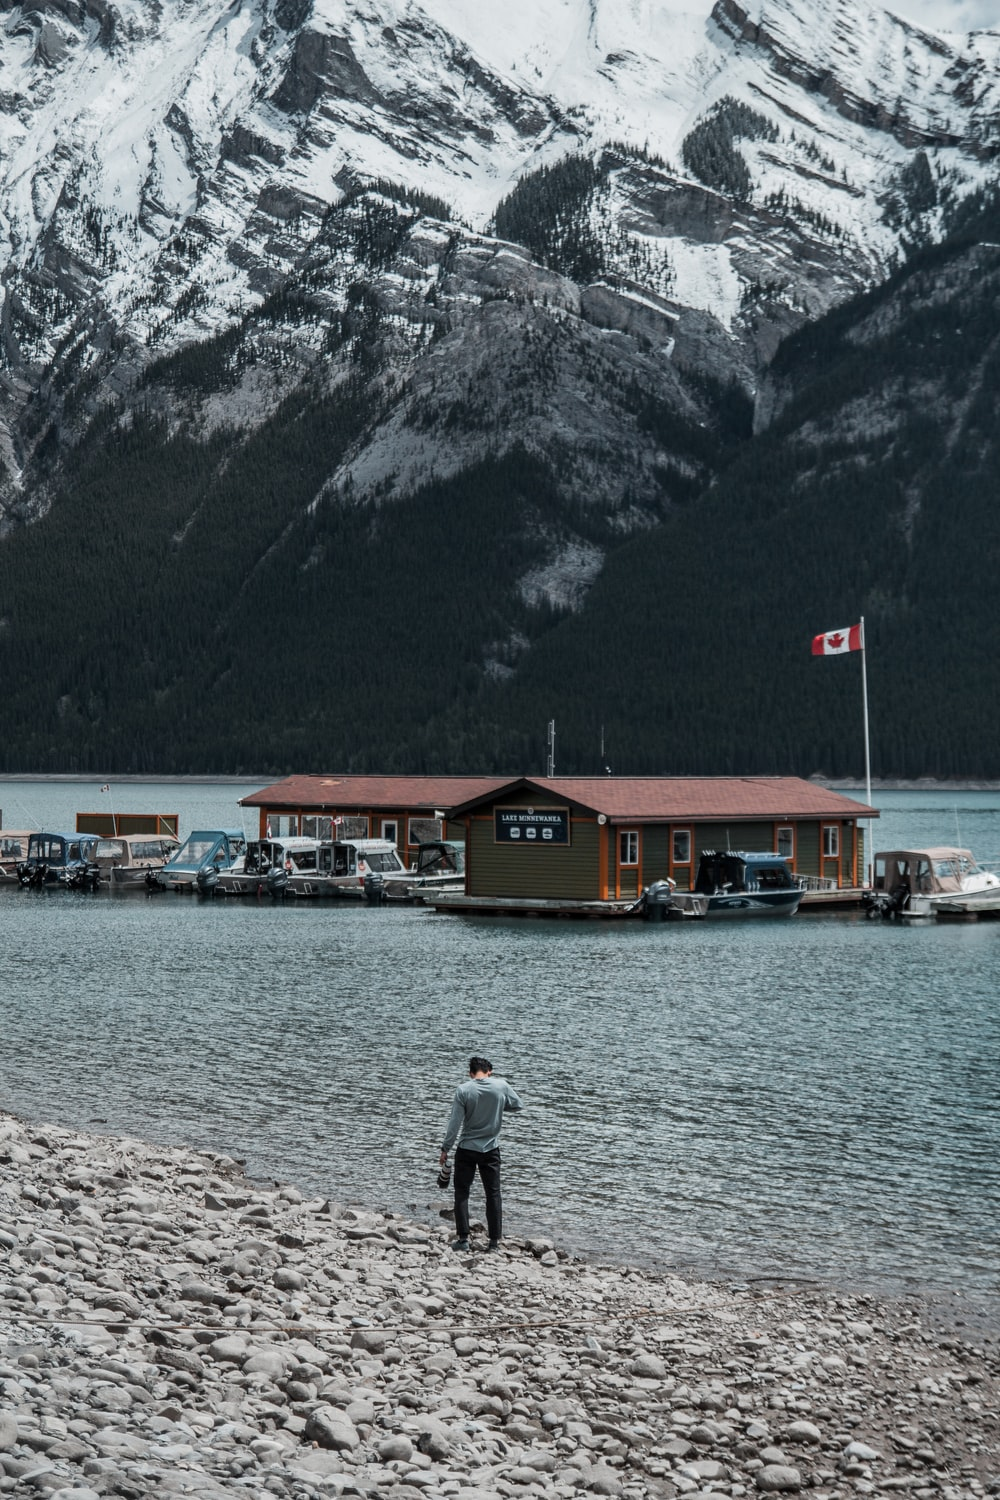 person walking near seashore viewing houses and mountain